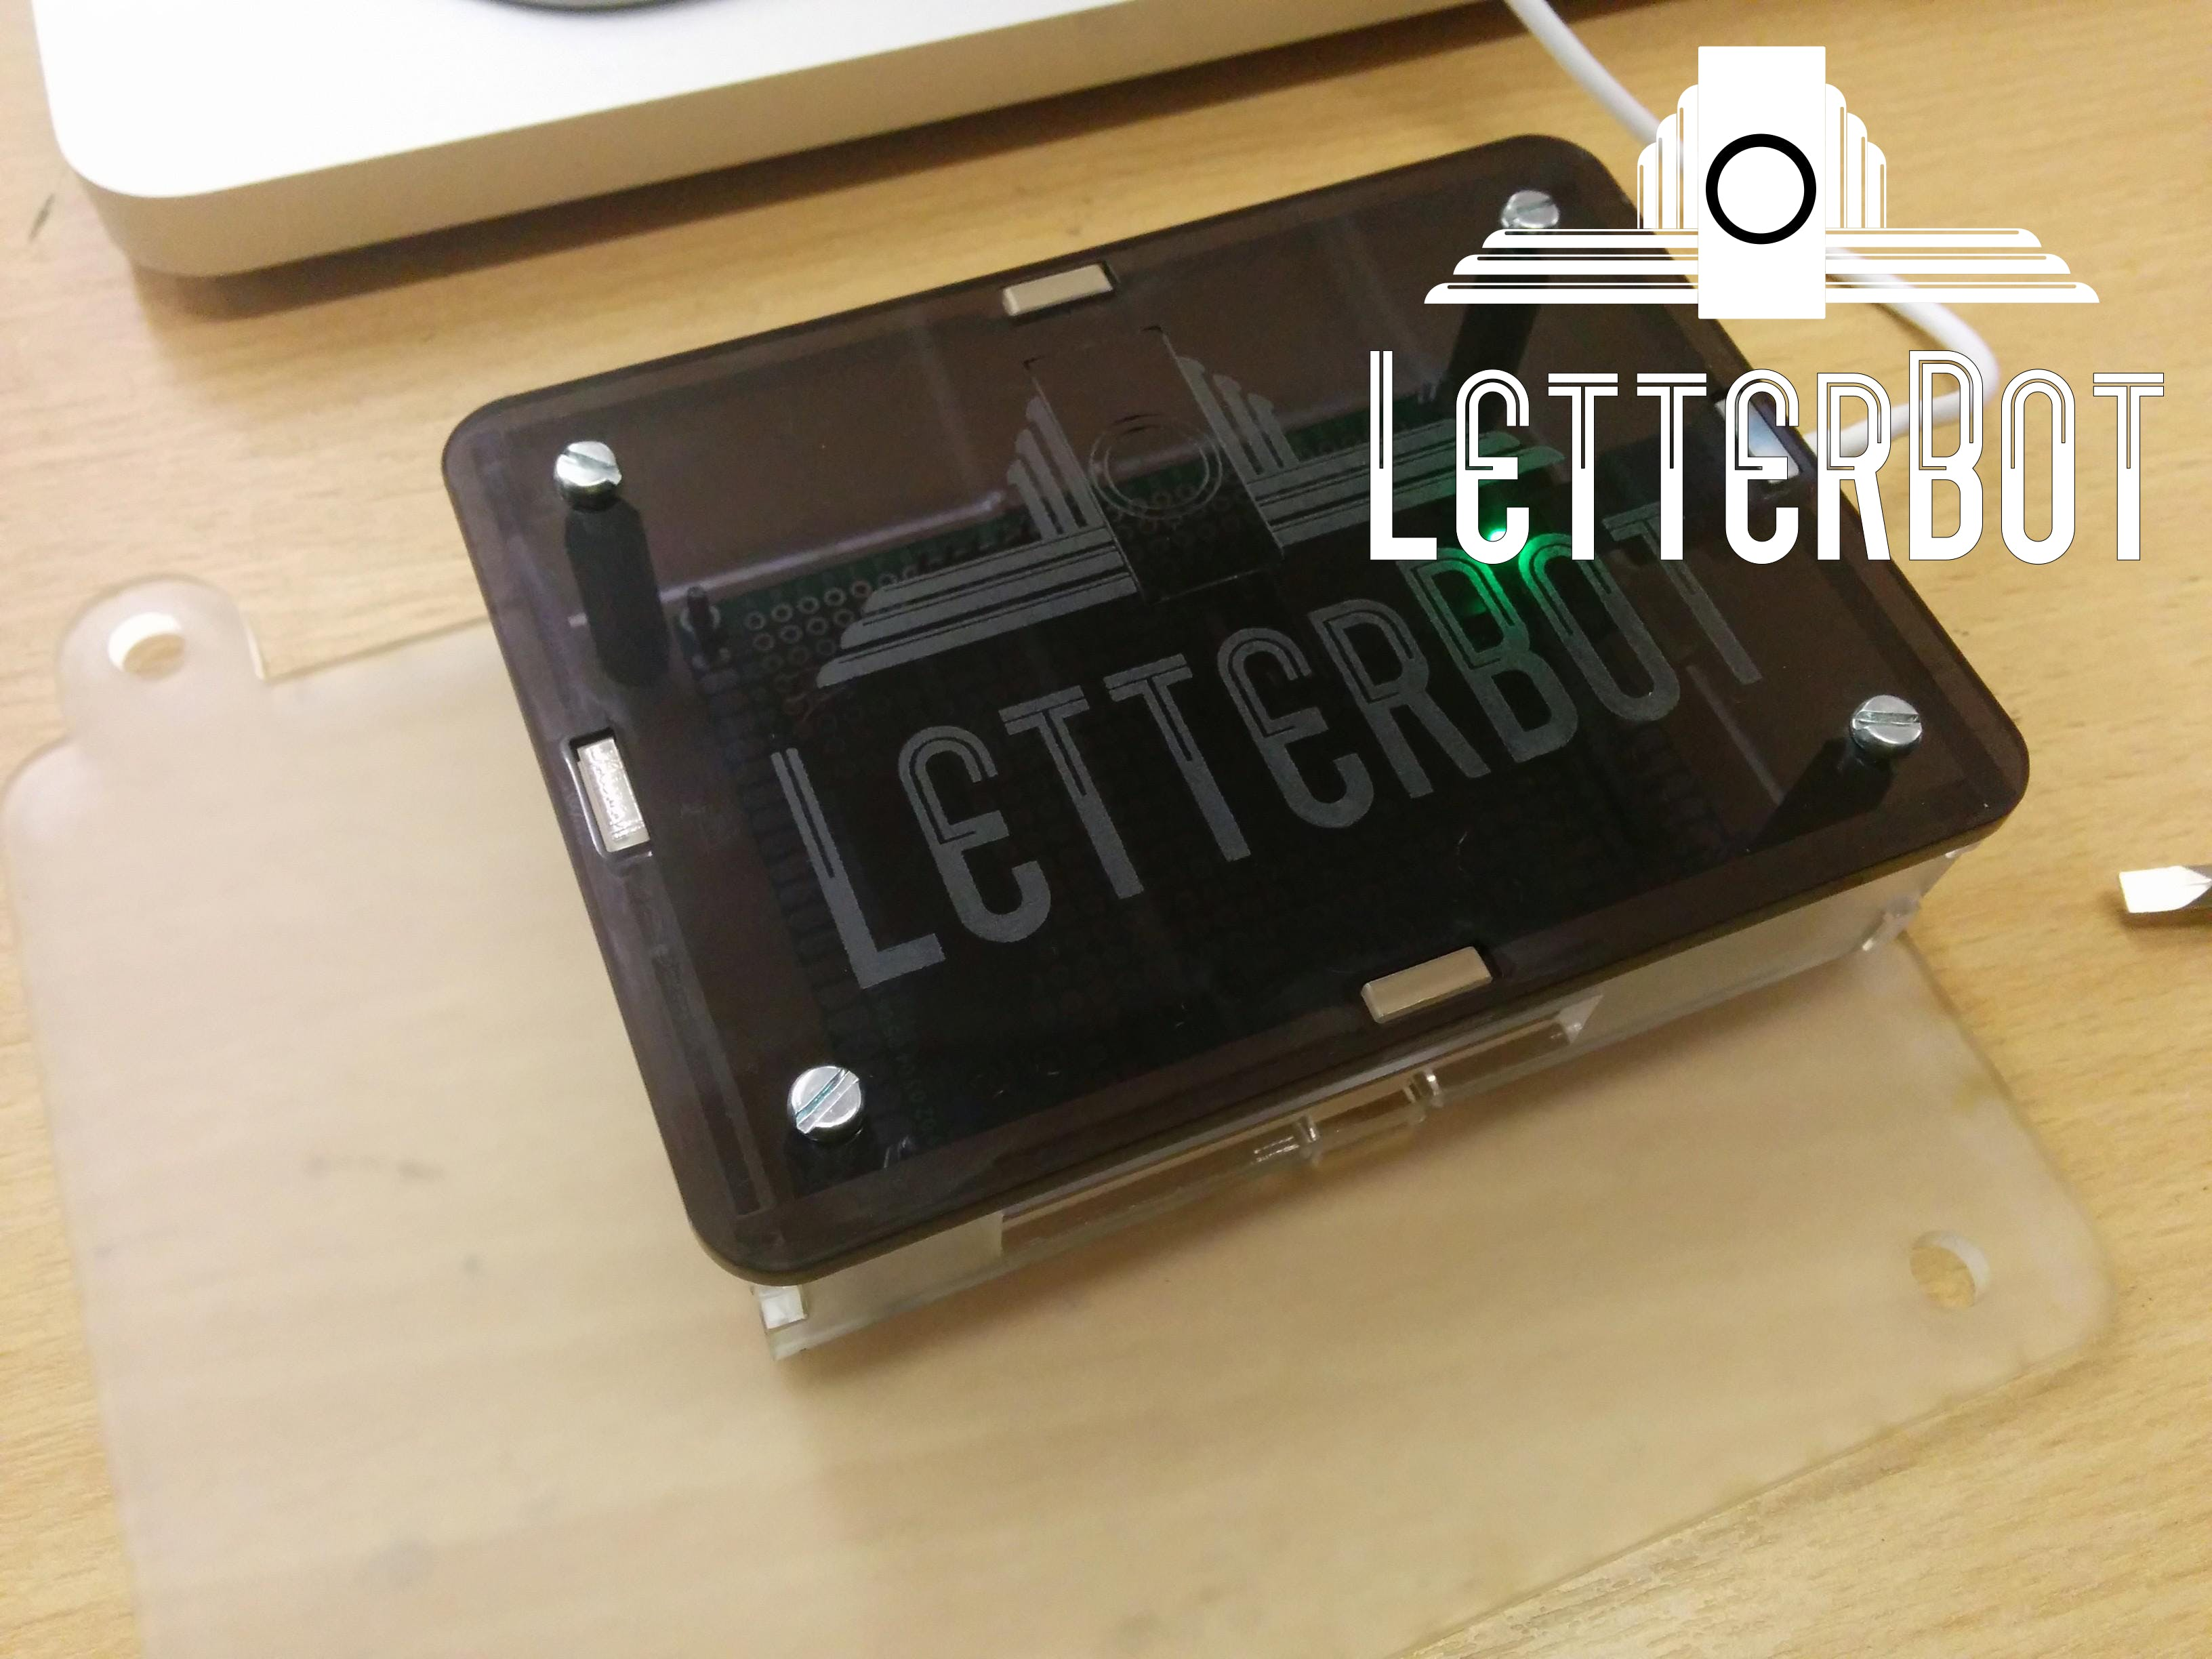 LetterBot